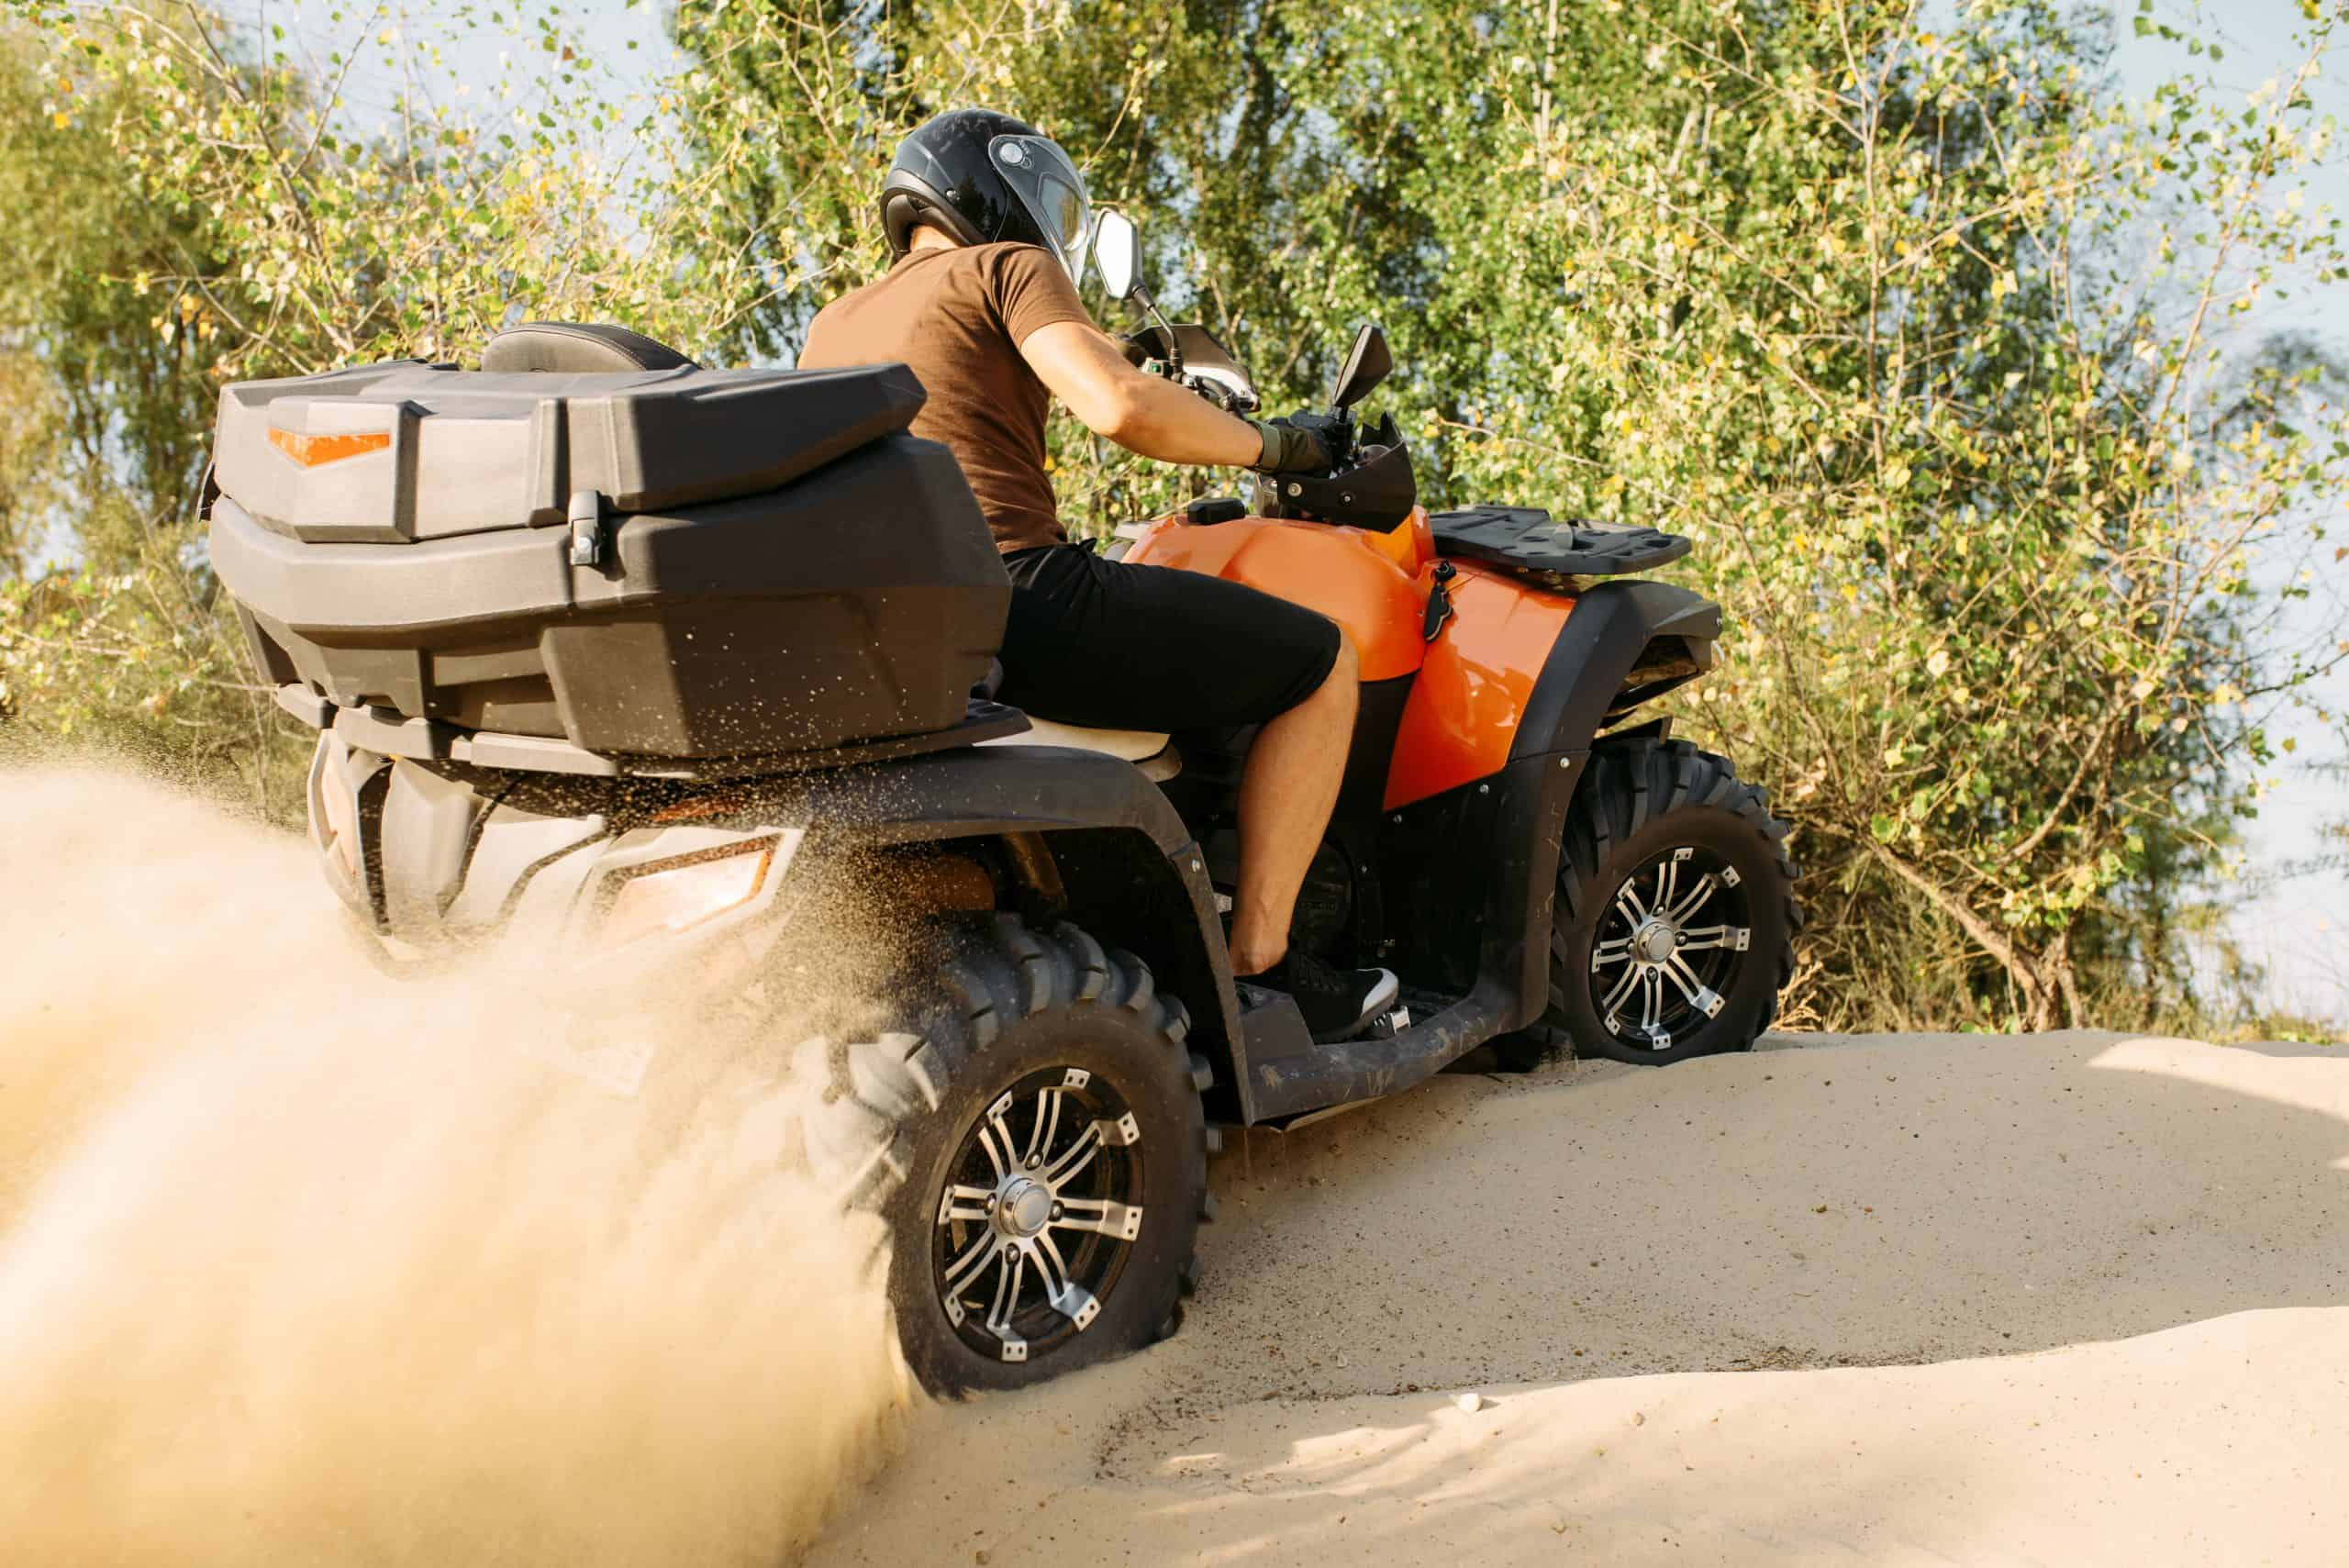 Are there electric ATVs (electric quad)